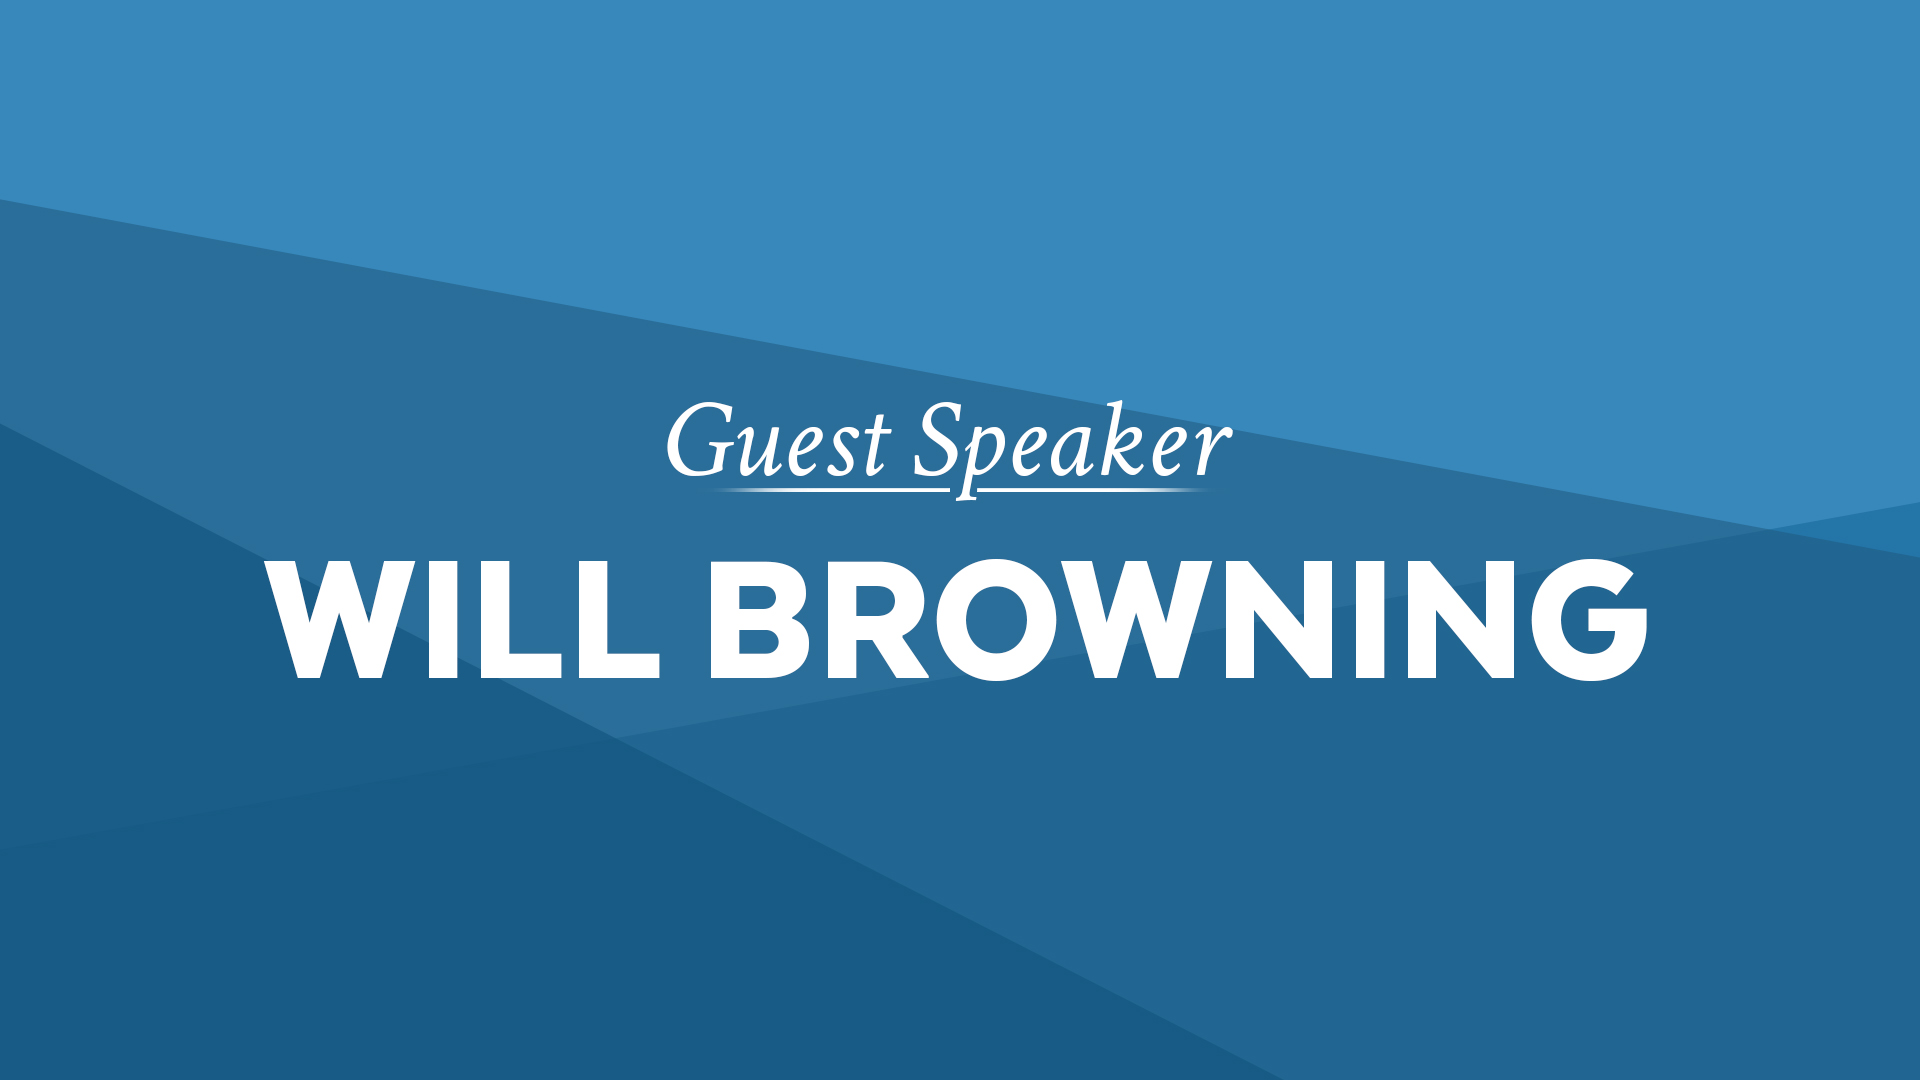 Guest Speaker: Will Browning